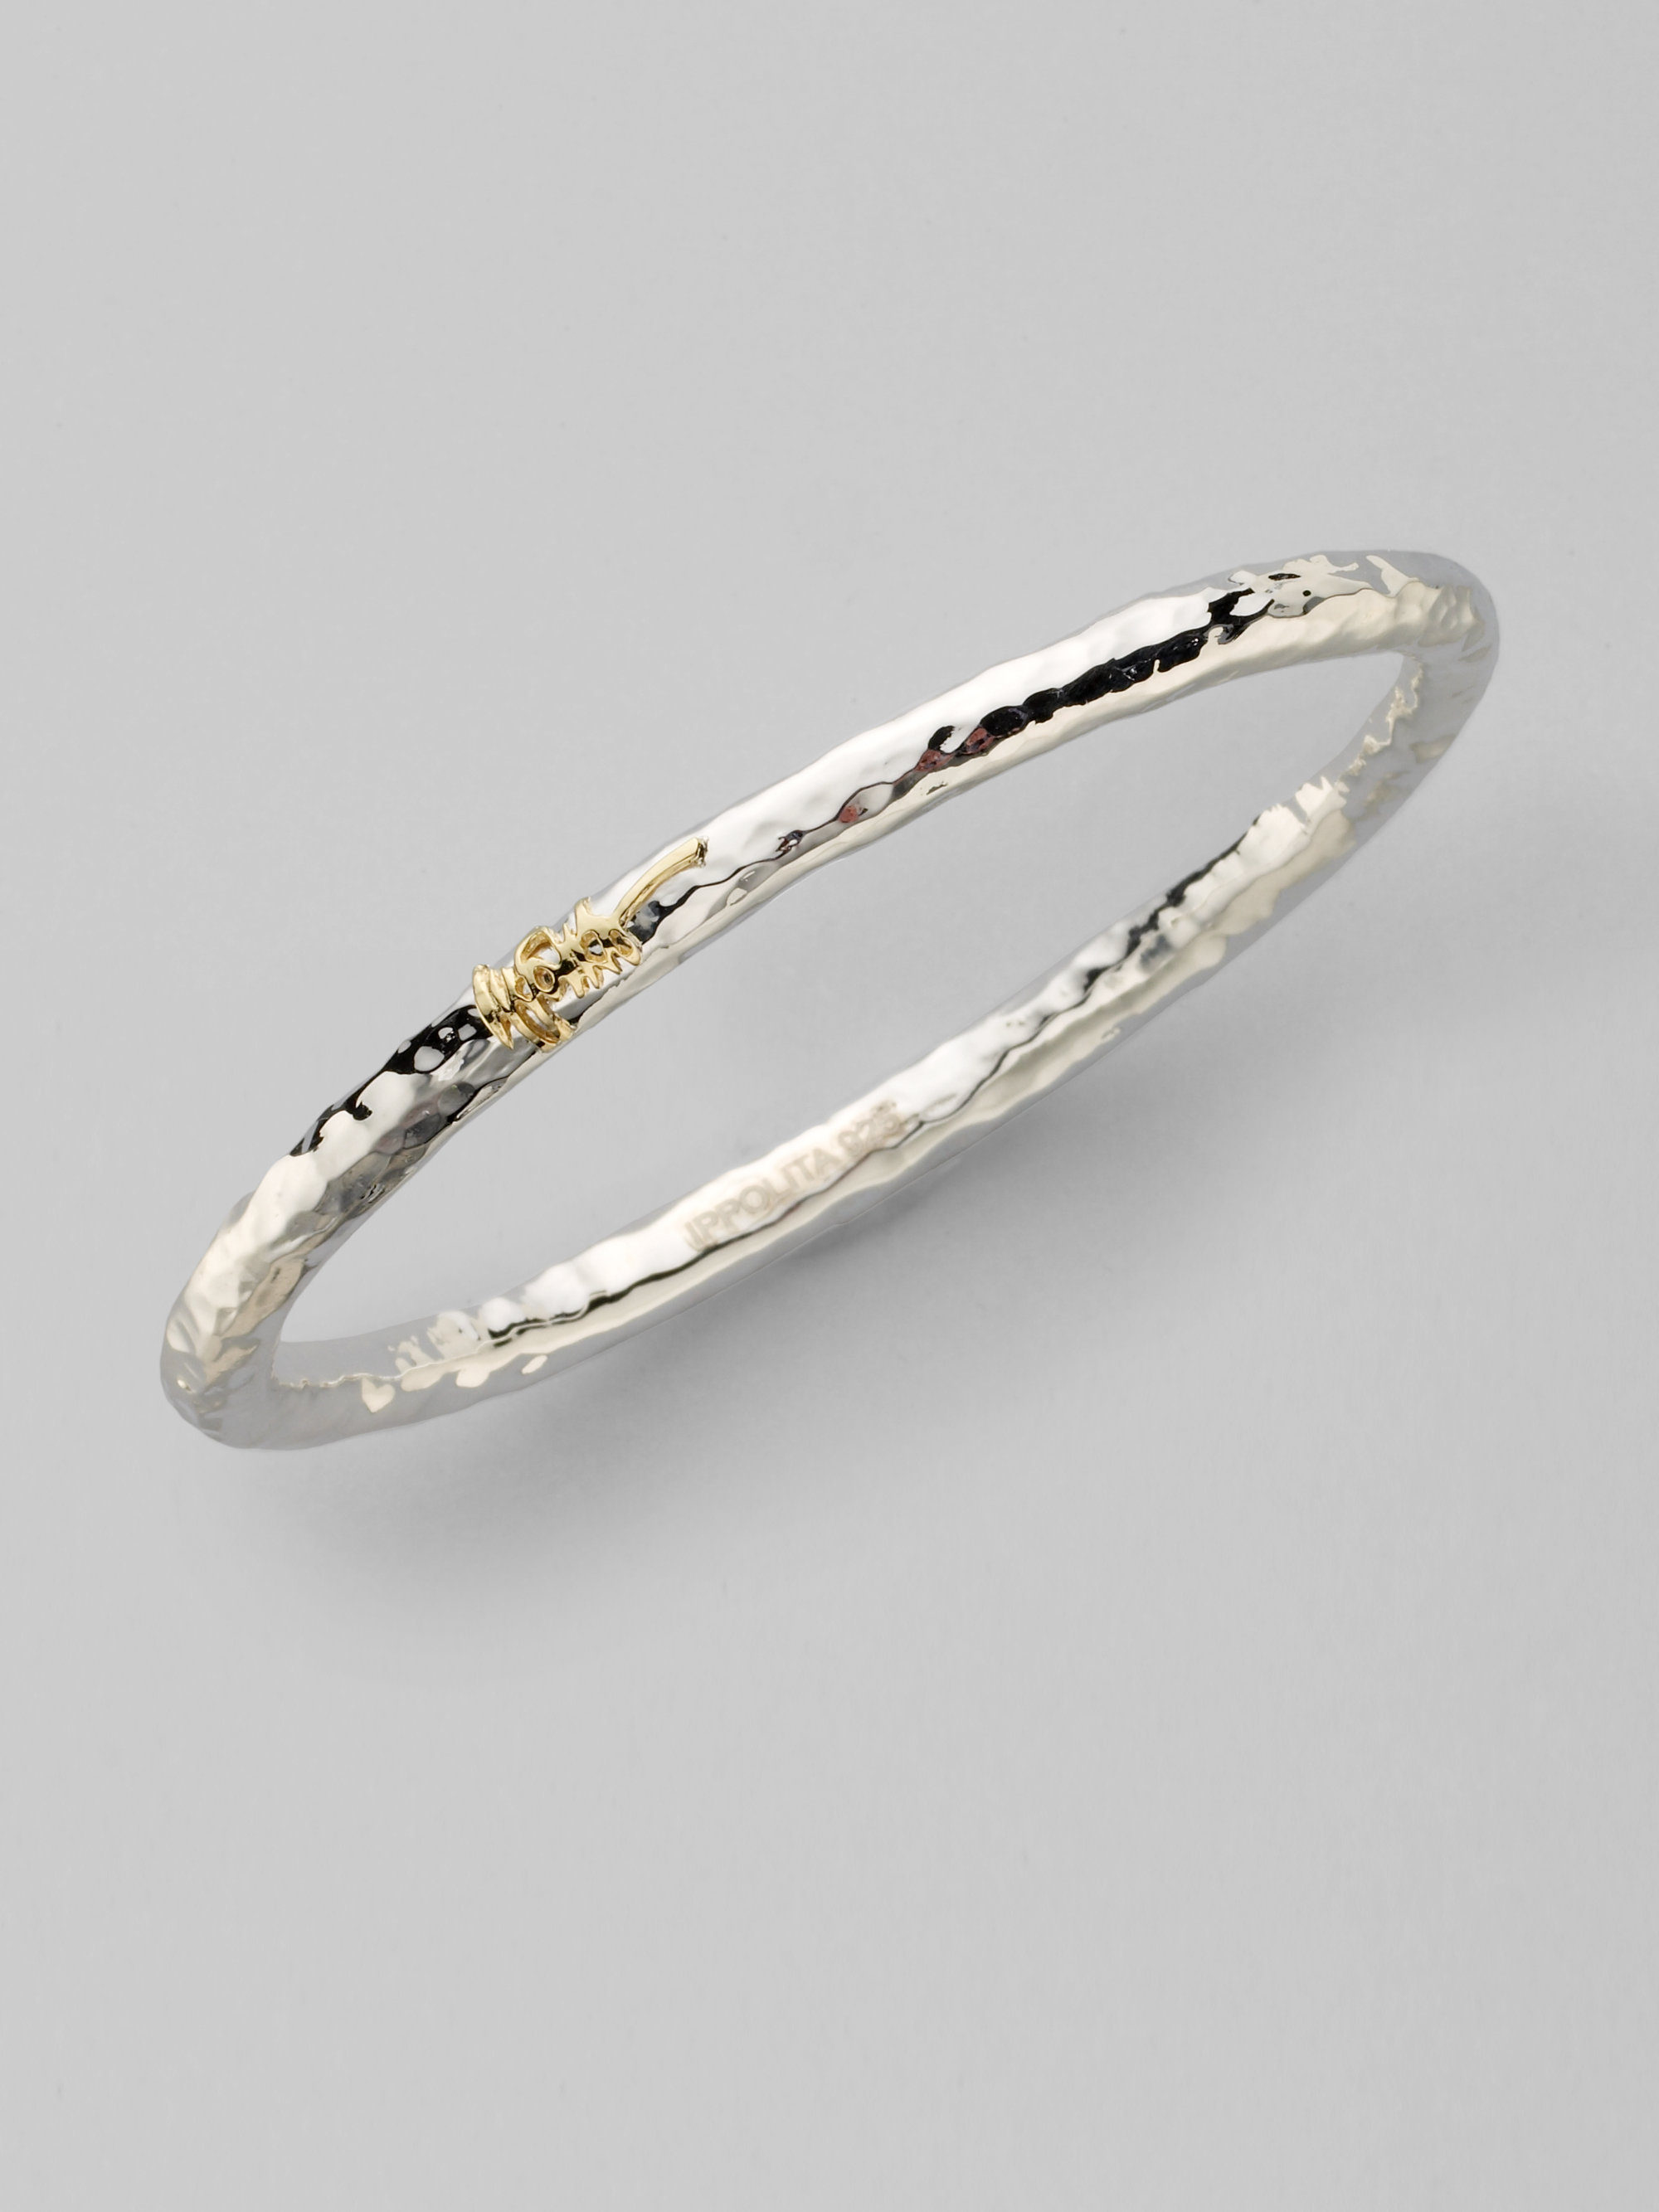 bangle s gold sterling bangles bracelets silver women naga jewelry bracelet hardy lyst yellow john metallic dragon and